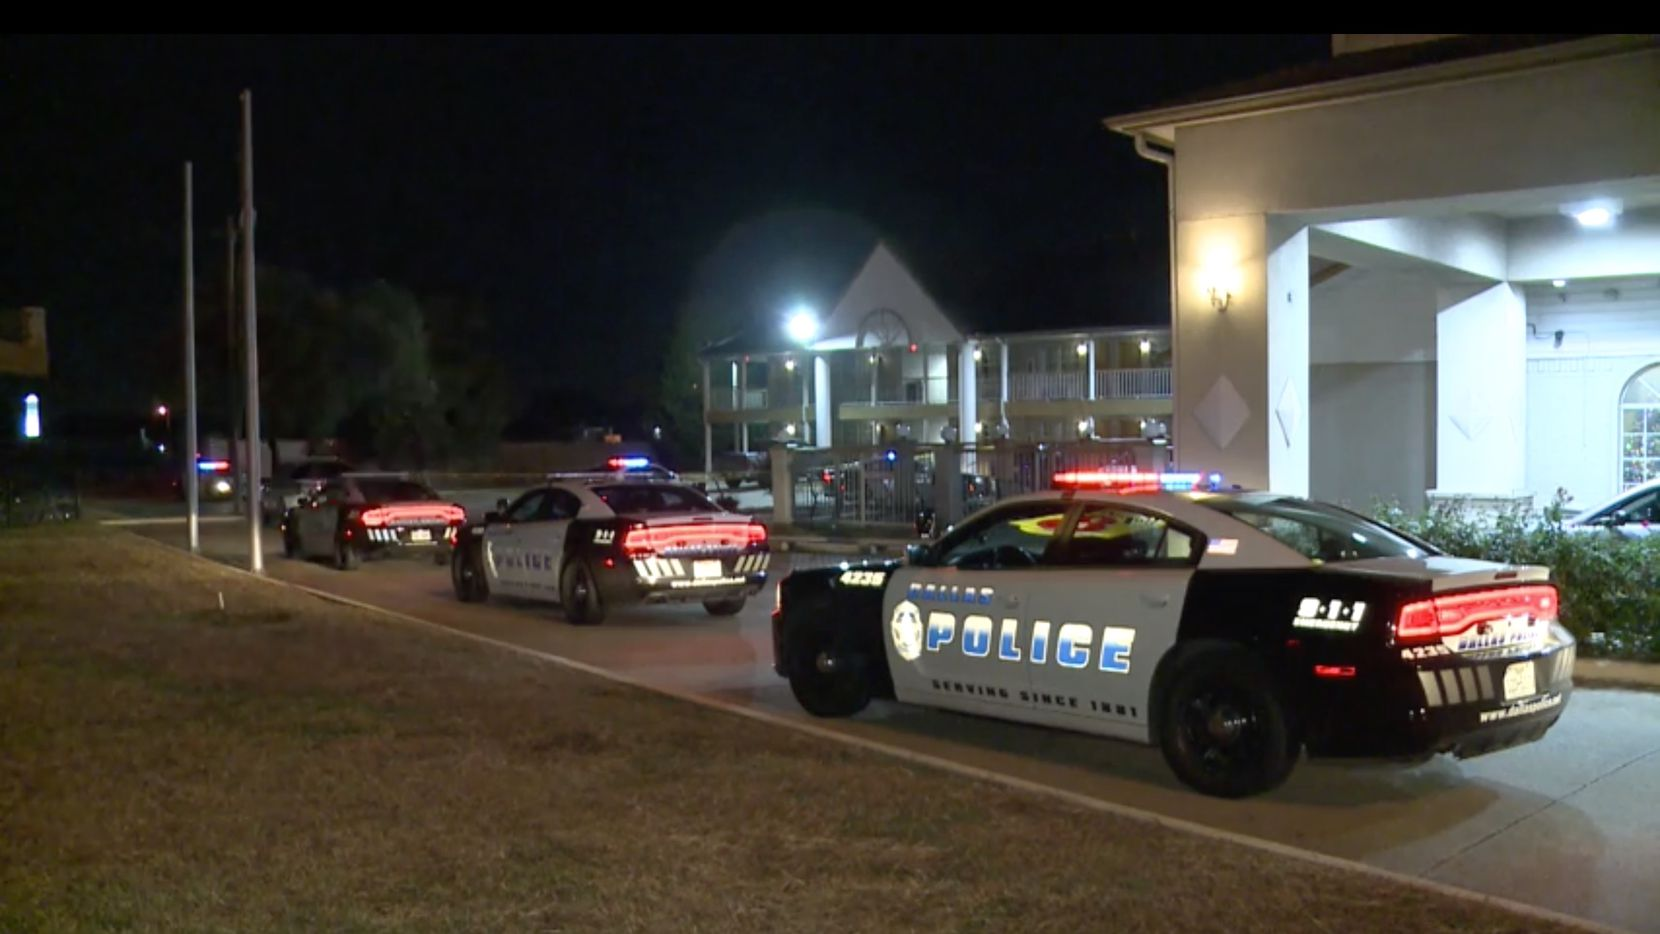 No arrests have been made in the double-shooting at the Super 8 hotel in Far East Dallas on Saturday, police said.